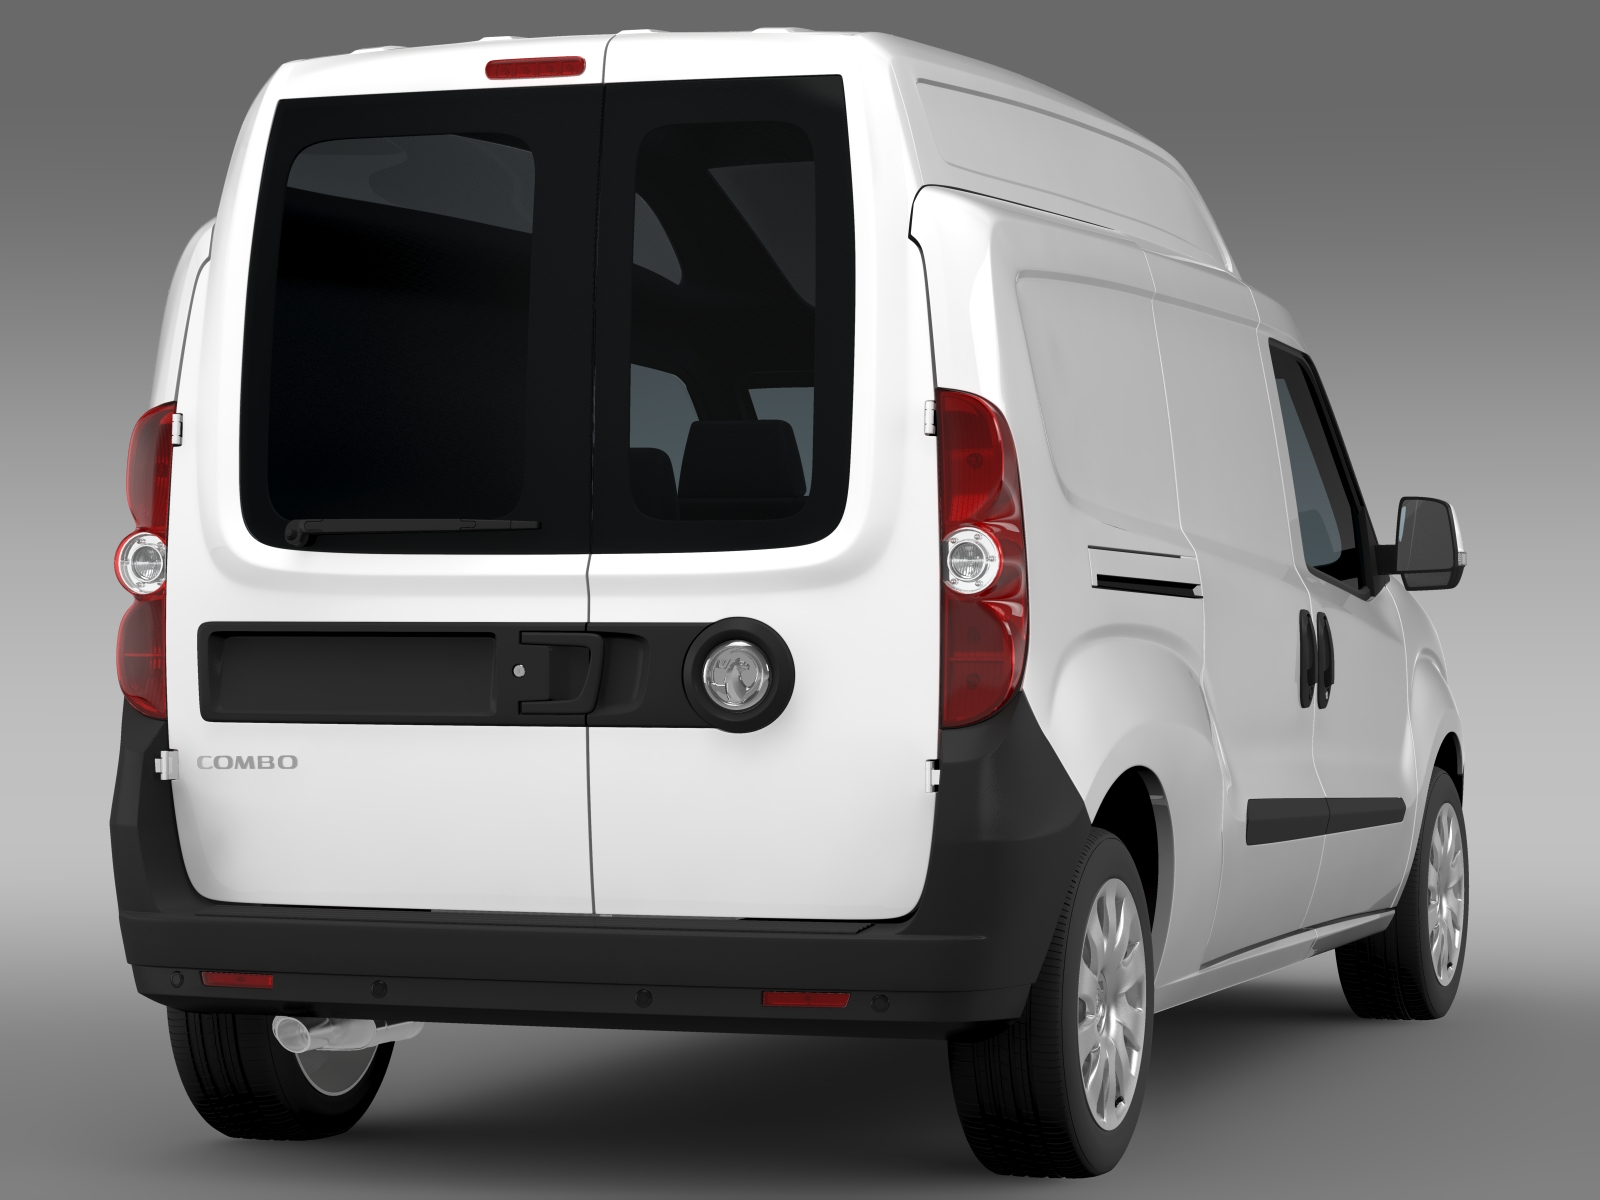 vauxhall combo h2l2 cargo 2015 3d model buy vauxhall combo h2l2 cargo 2015 3d model flatpyramid. Black Bedroom Furniture Sets. Home Design Ideas